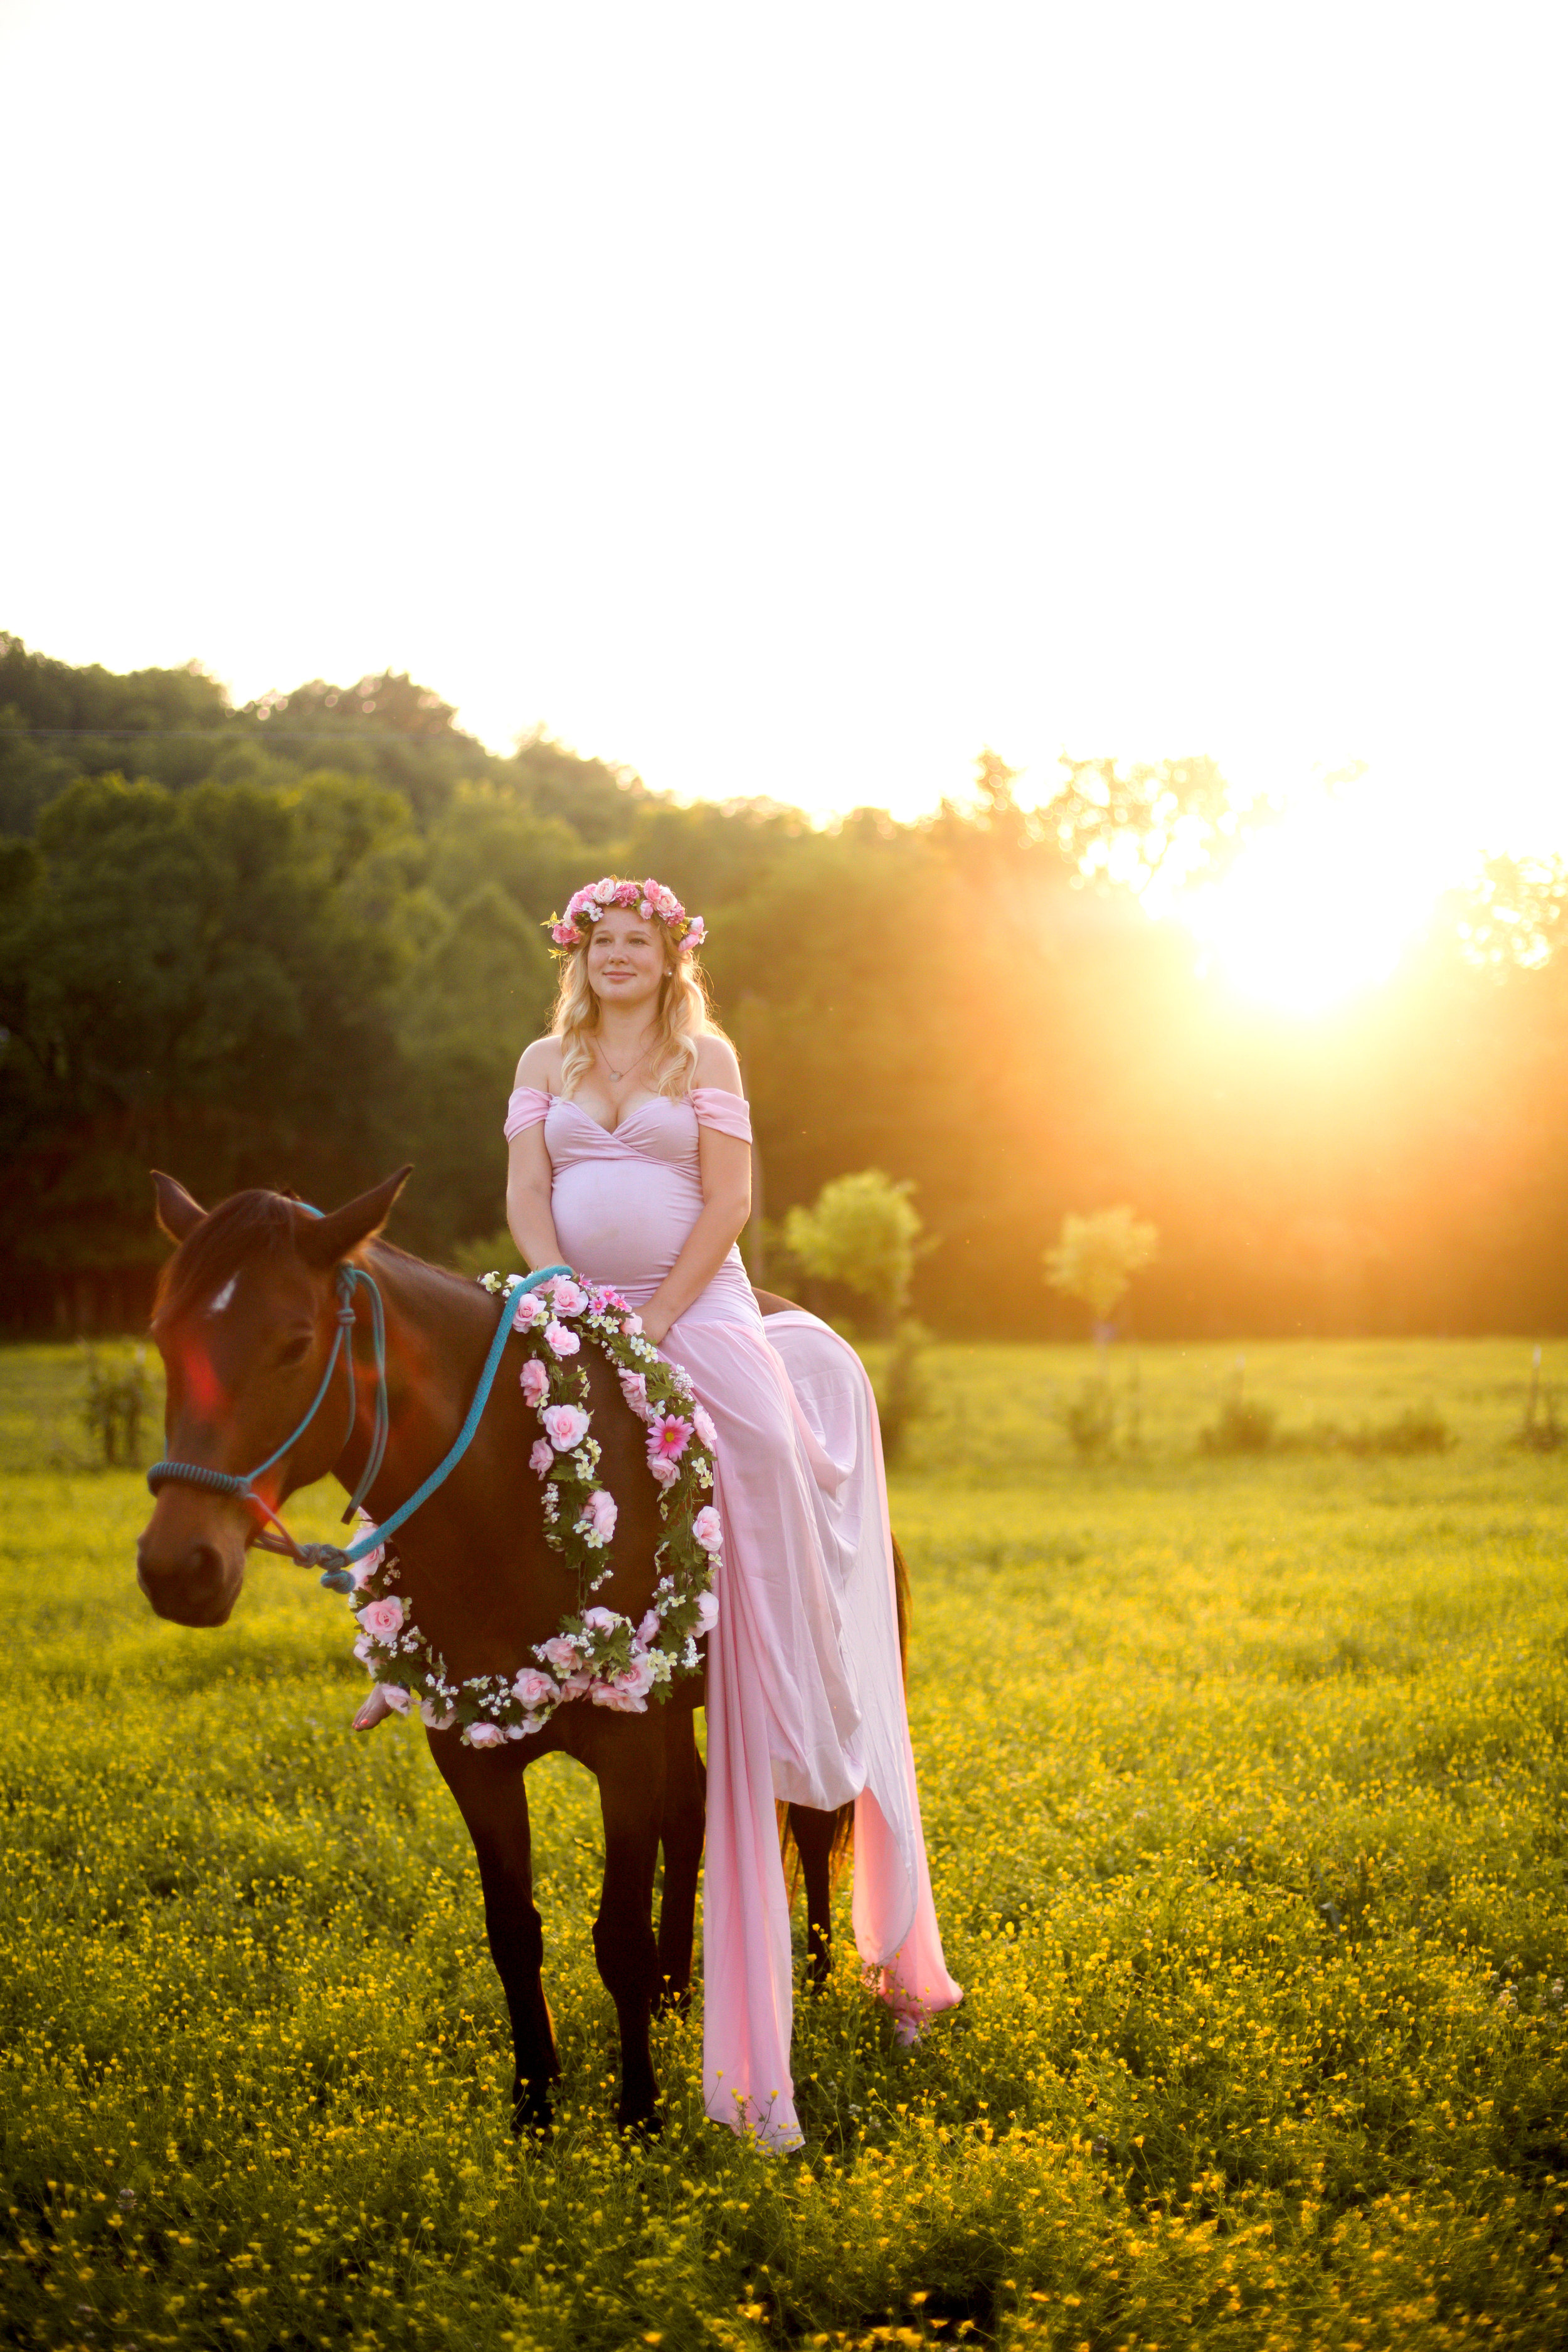 Savanna & Terry Maternity Session - Nashville Newborn Photographer - Chelsea Meadows Photography (50).jpg